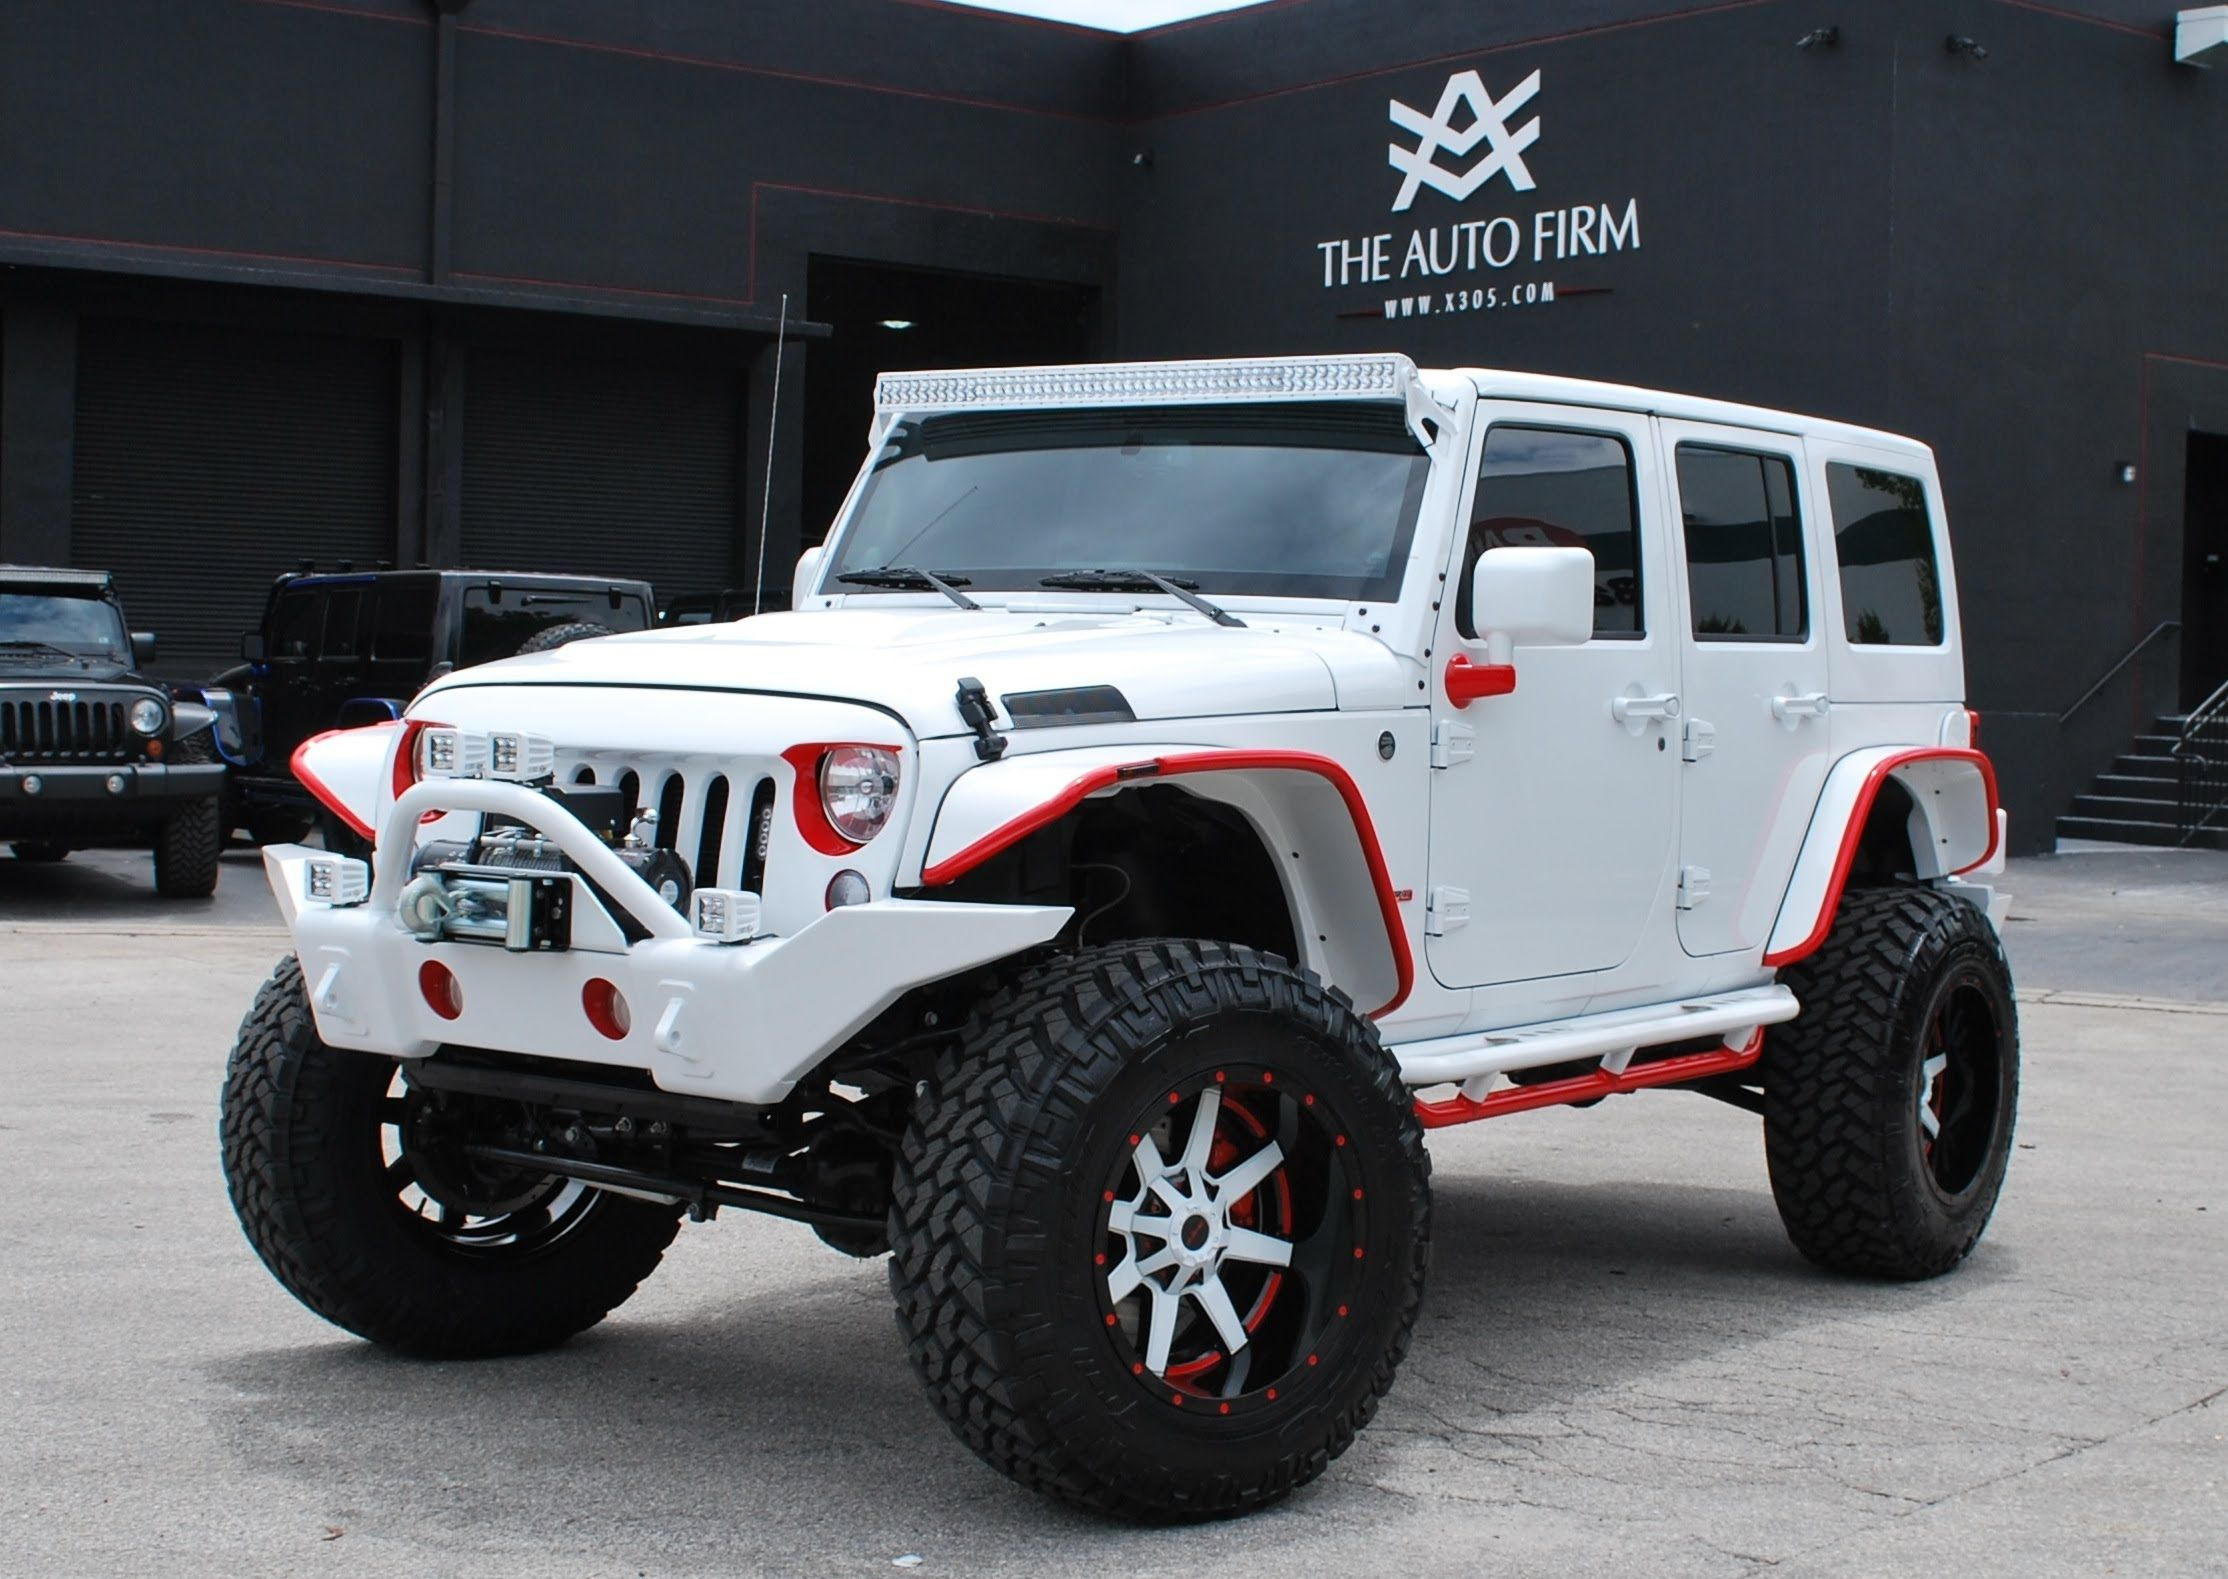 Best Jeep Wrangler Srt8 Hemi V8 For Sale White Jeep Wrangler White Jeep Jeep Wrangler Sahara